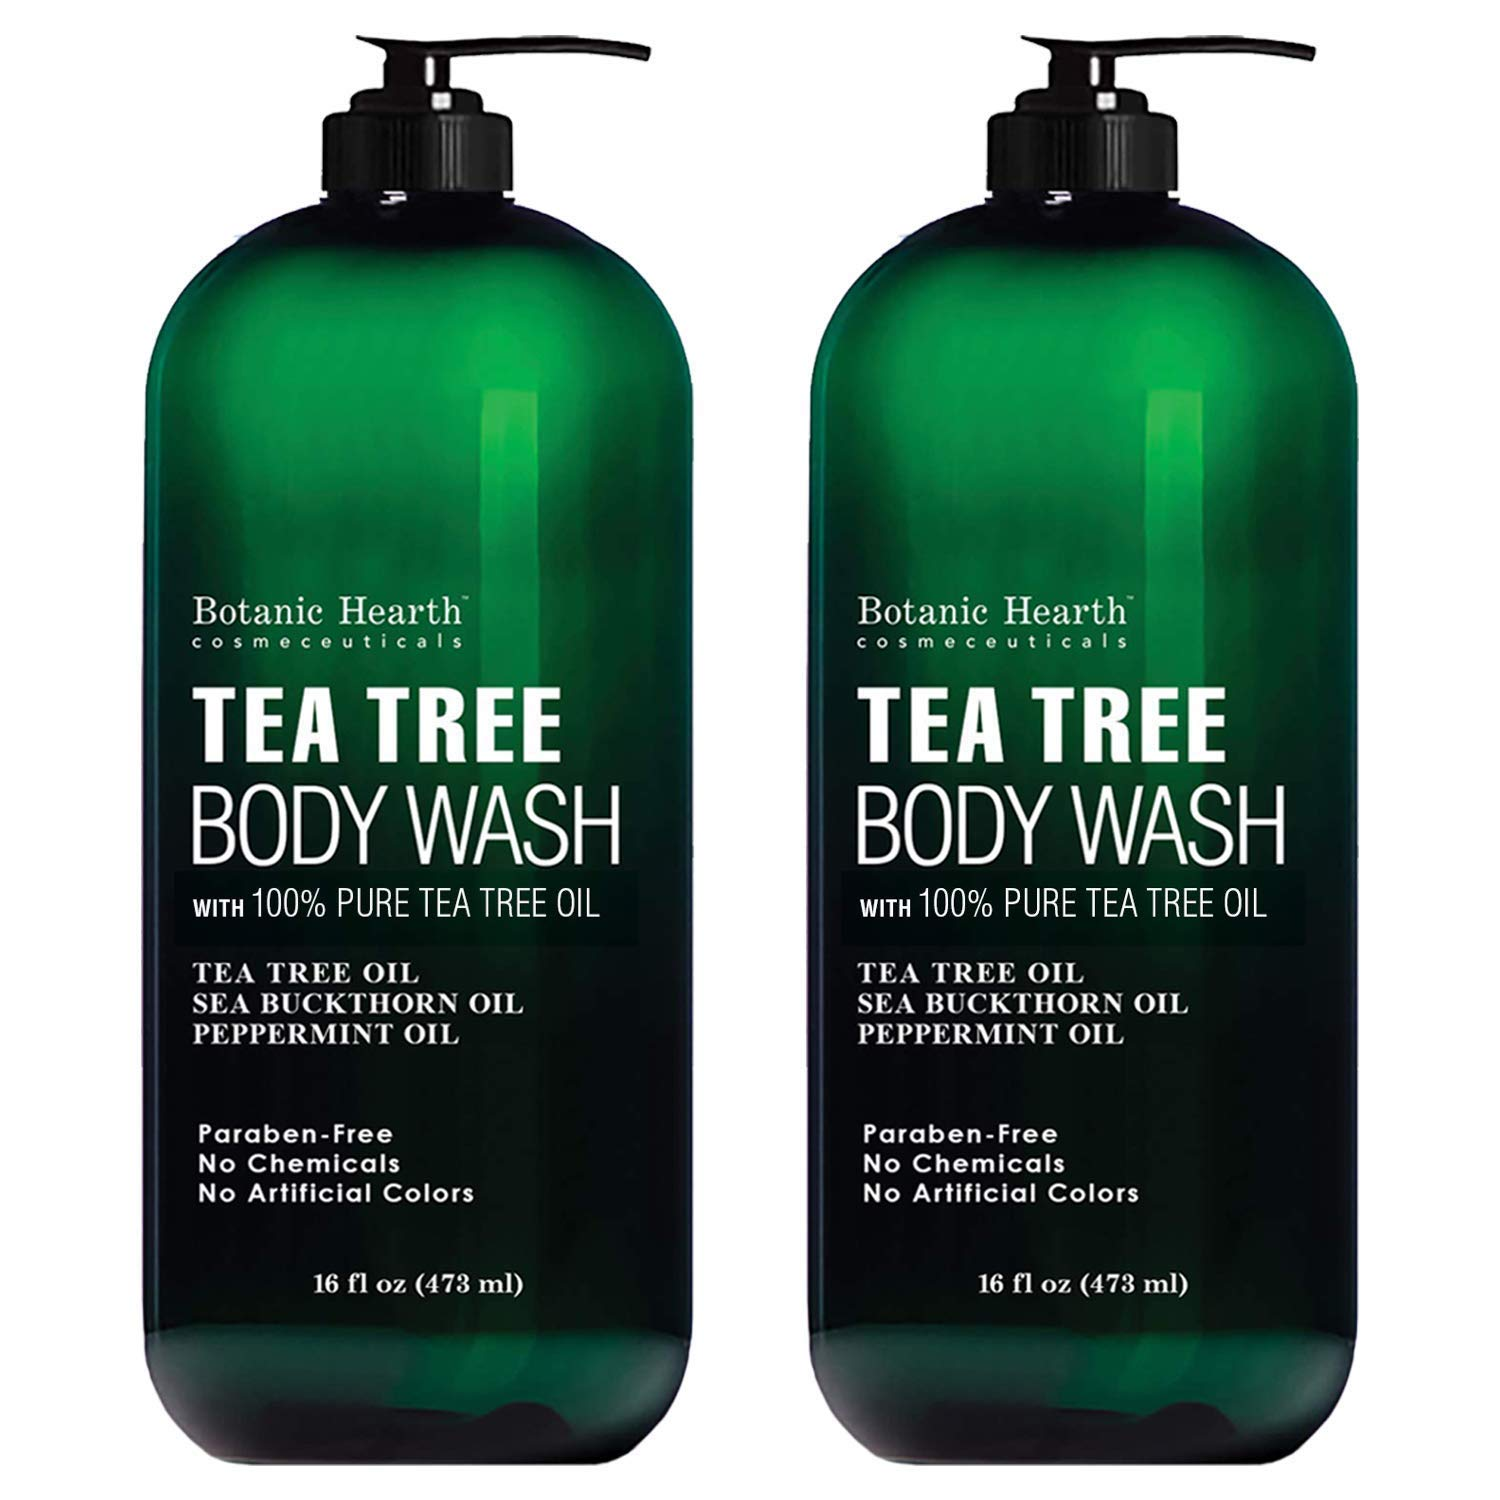 BOTANIC HEARTH Tea Tree Body Wash, Helps Nail Fungus, Athletes Foot, Ringworms, Jock Itch, Acne, Eczema & Body Odor, Soothes Itching & Promotes Healthy Skin and Feet, Naturally Scented, 16fl oz 2 Pack by Botanic Hearth